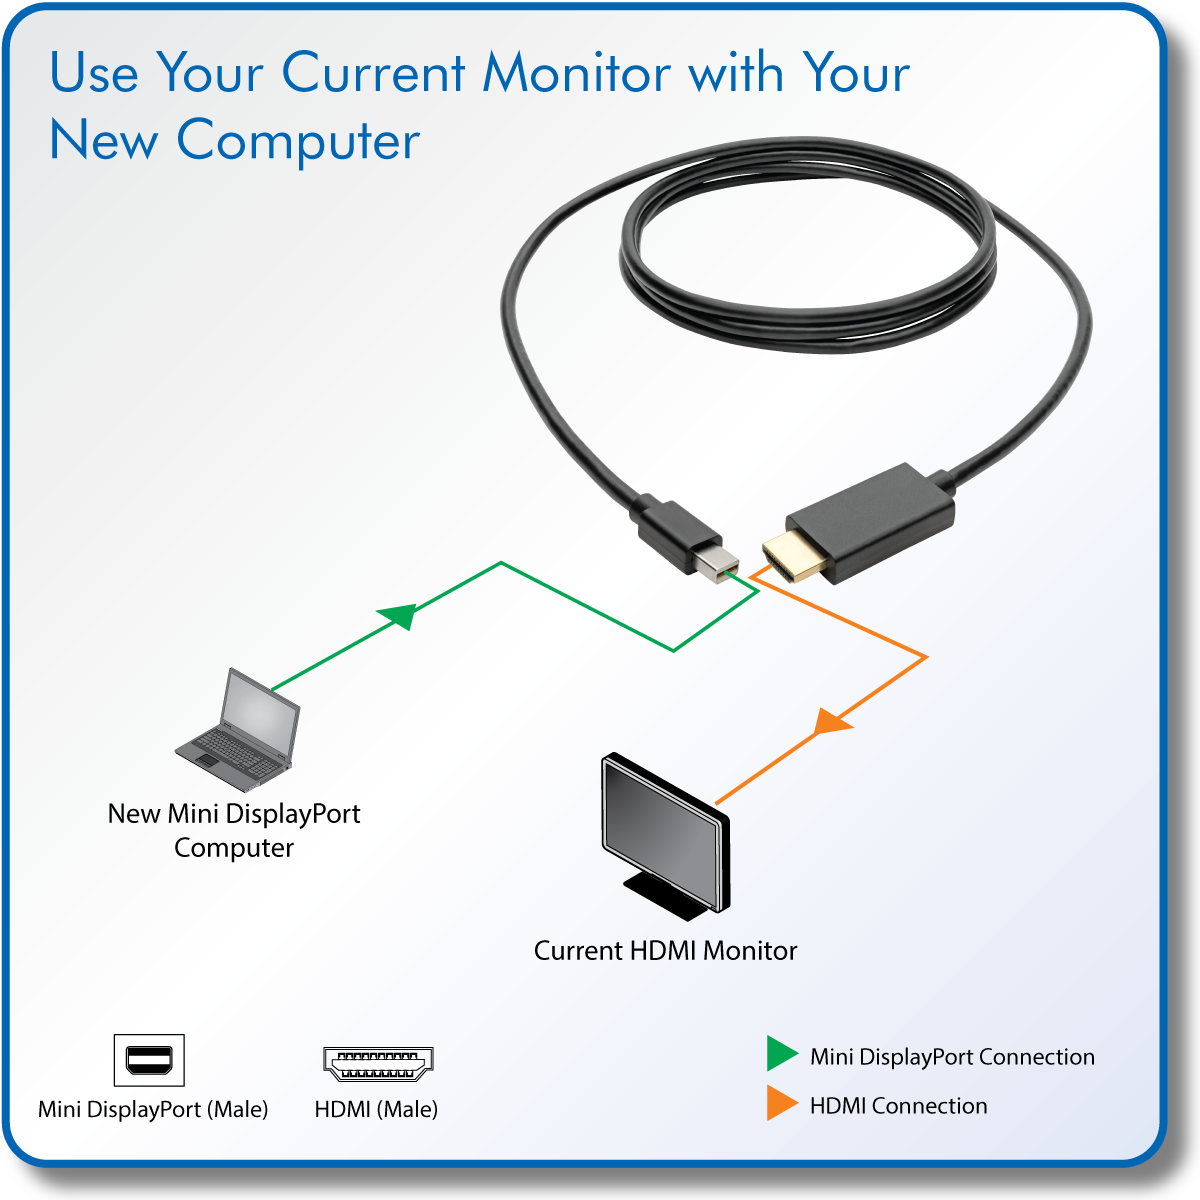 Directly Connect an HDMI Monitor to a Mini DisplayPort Computer